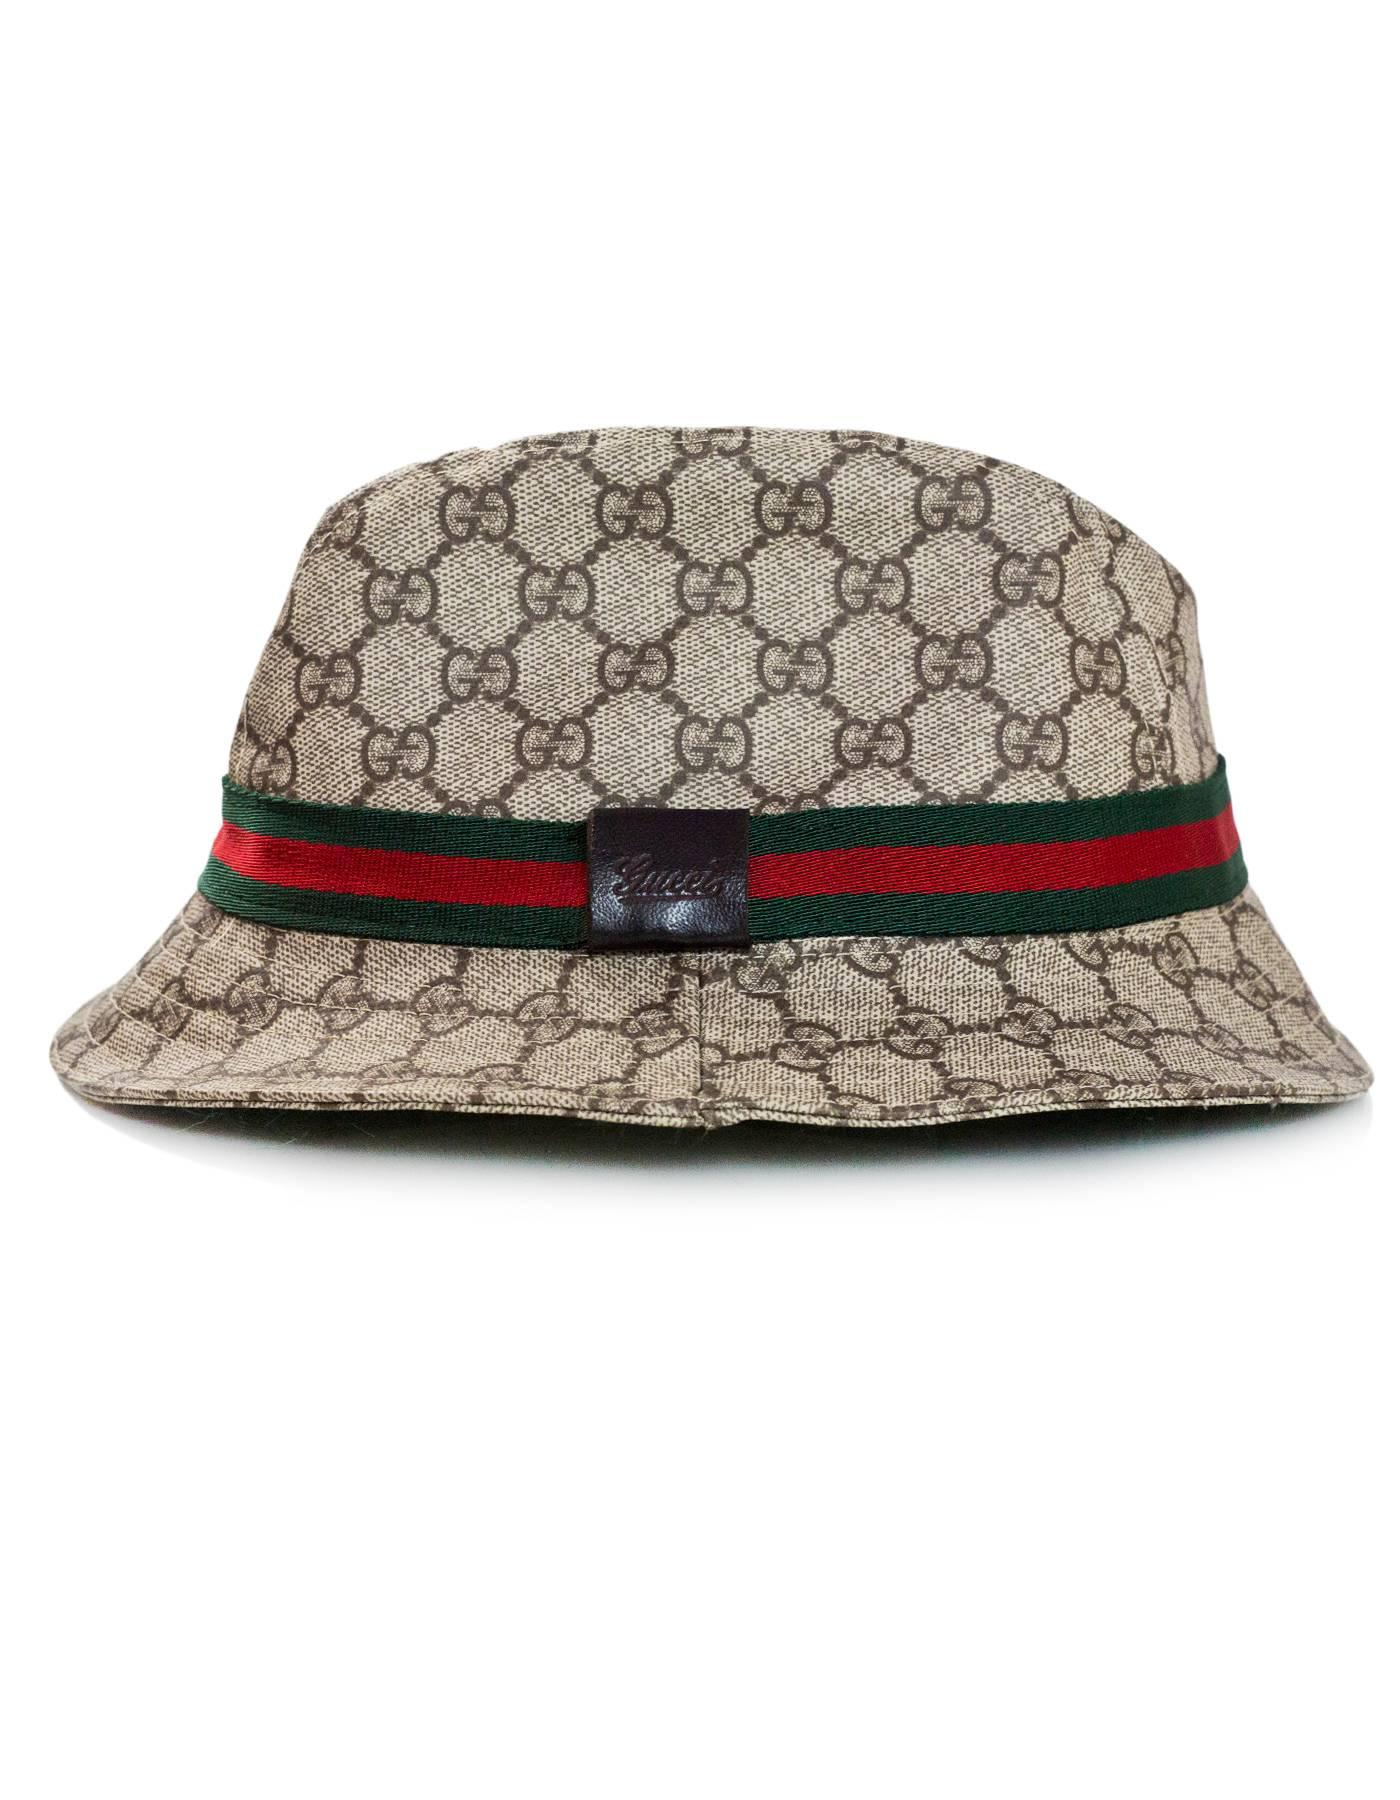 Gucci Monogram Supreme Bucket Hat Sz S For Sale at 1stdibs eafafd119f4